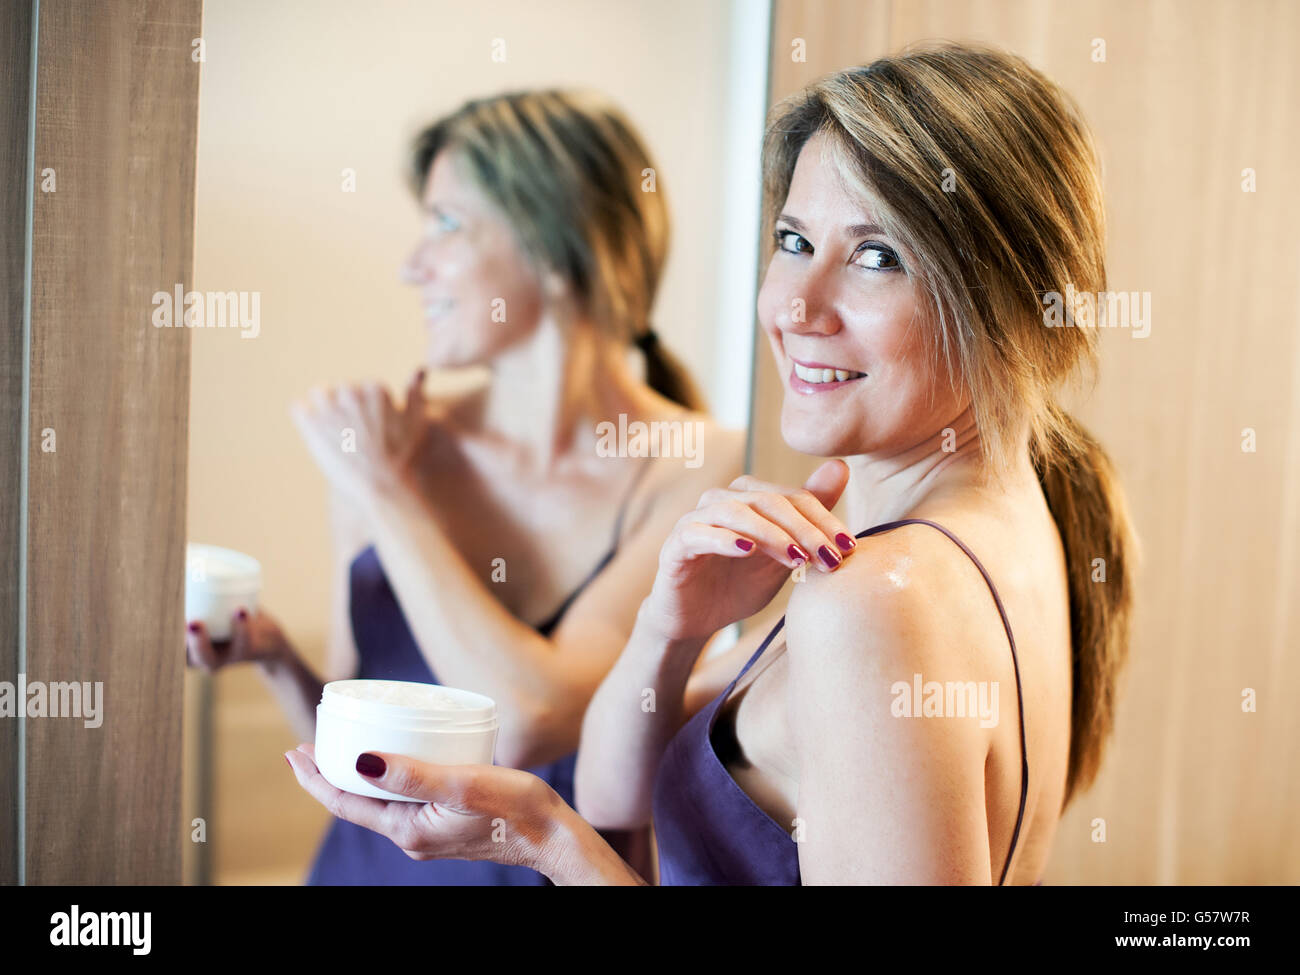 Cheerful beautiful woman applying cosmetic - Stock Image